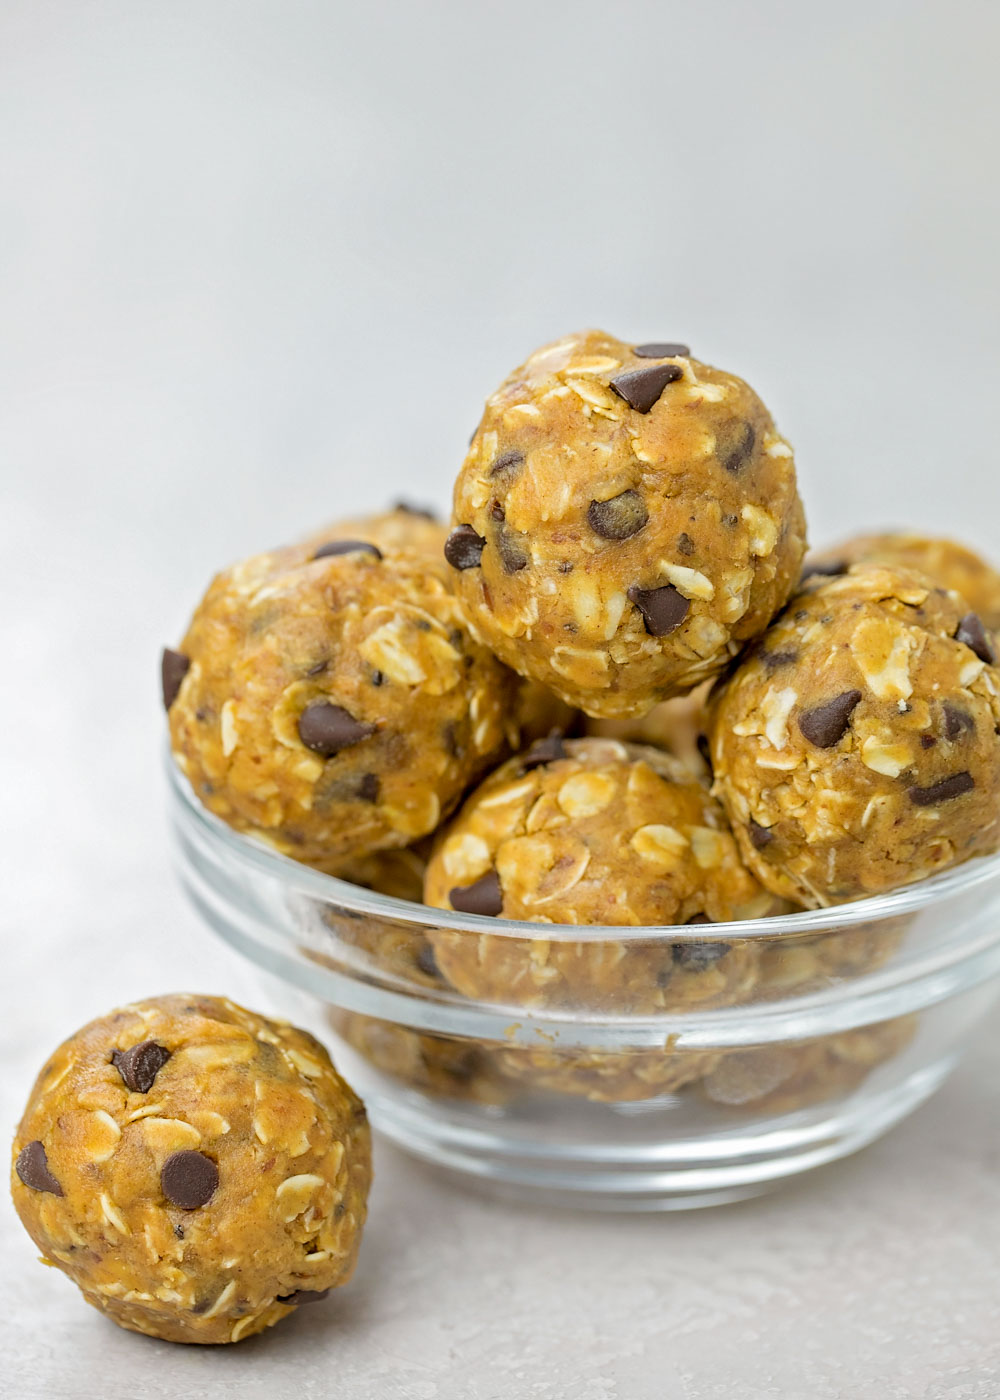 Peanut butter energy balls stacked in a bowl